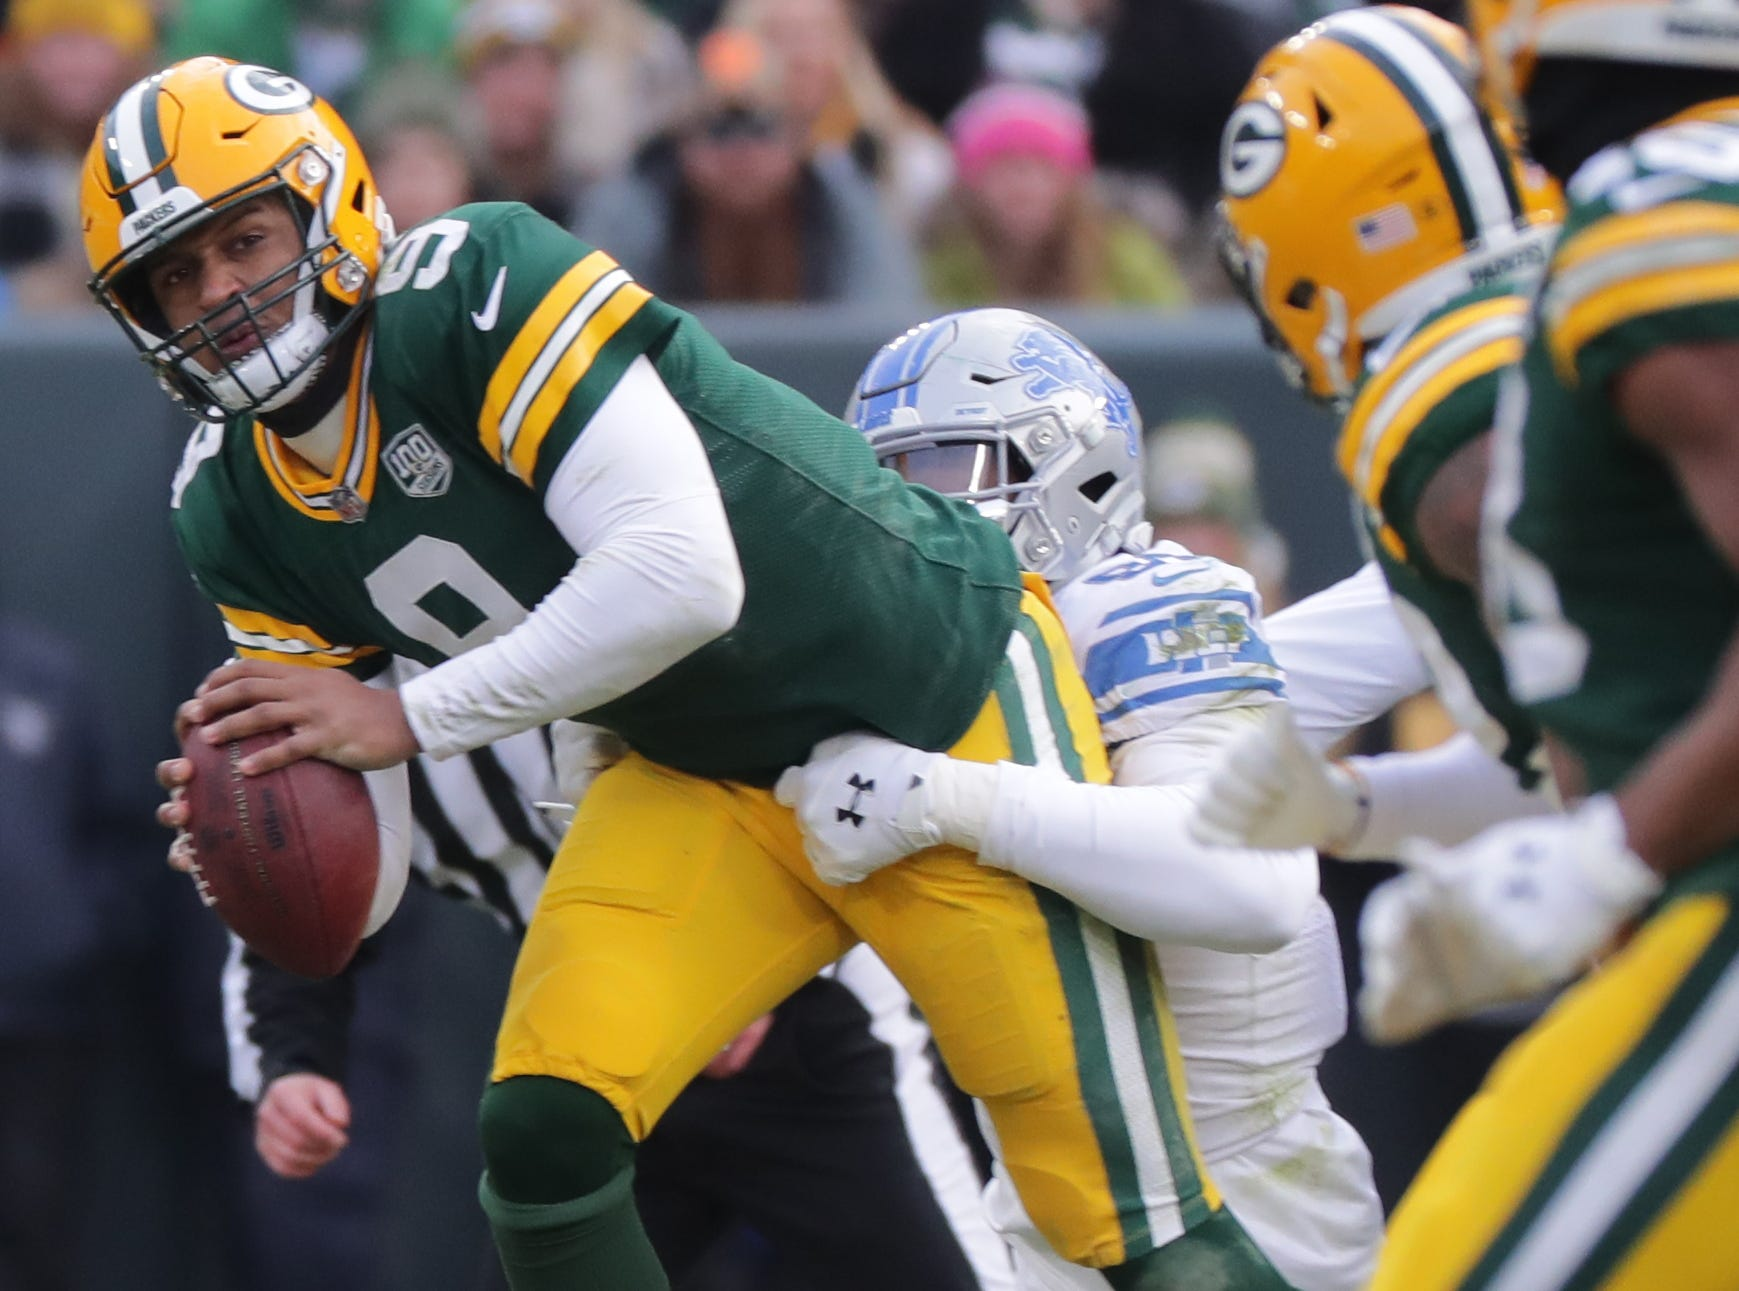 Green Bay Packers quarterback DeShone Kizer (9) throws an interception during the fourth quarter of their game Sunday, December 30, 2018 at Lambeau Field in Green Bay, Wis. The Detroit Lions beat the Green Bay Packers 31-0.  MARK HOFFMAN/MILWAUKEE JOURNAL SENTINEL